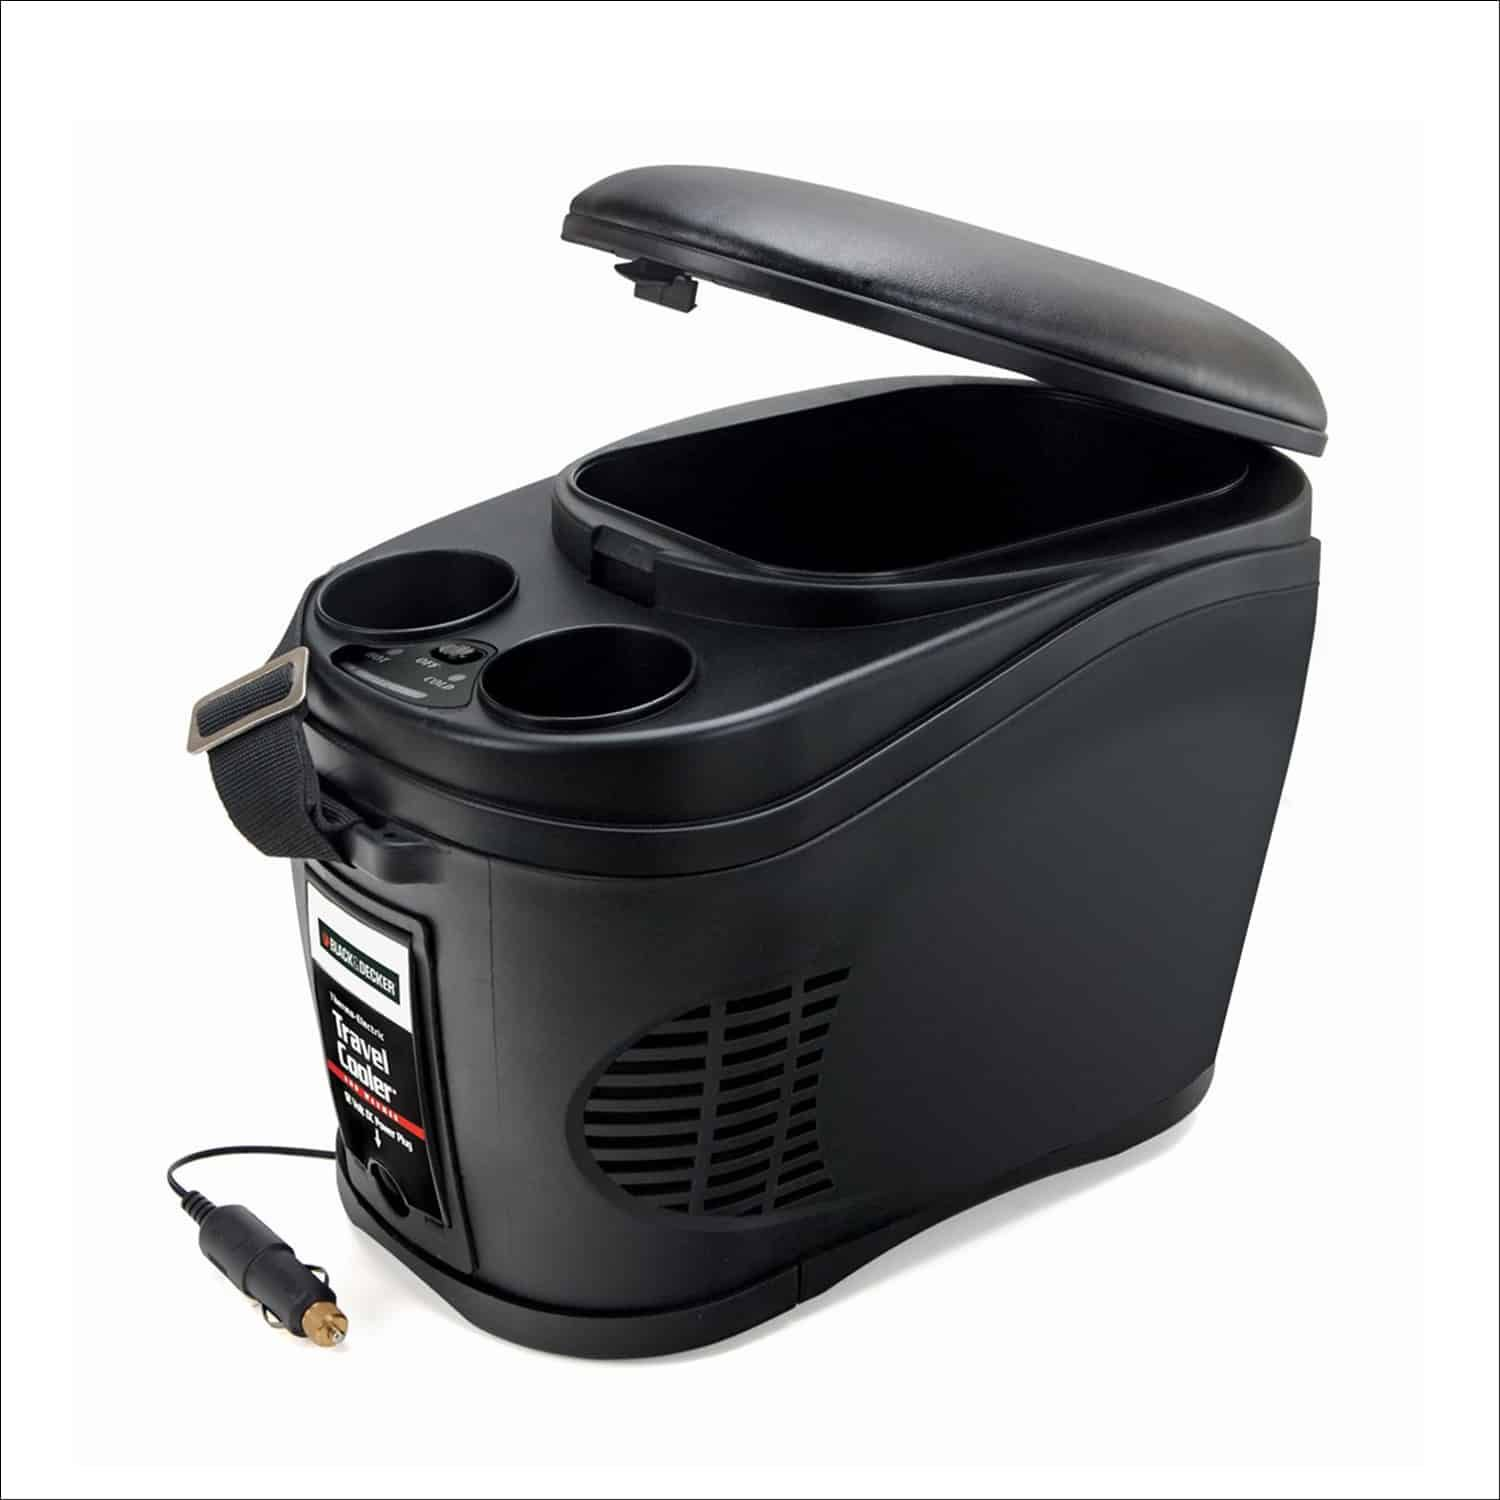 Black Decker Tc212b Travel Cooler Warmer Car Cooler Car Gadgets Black Decker